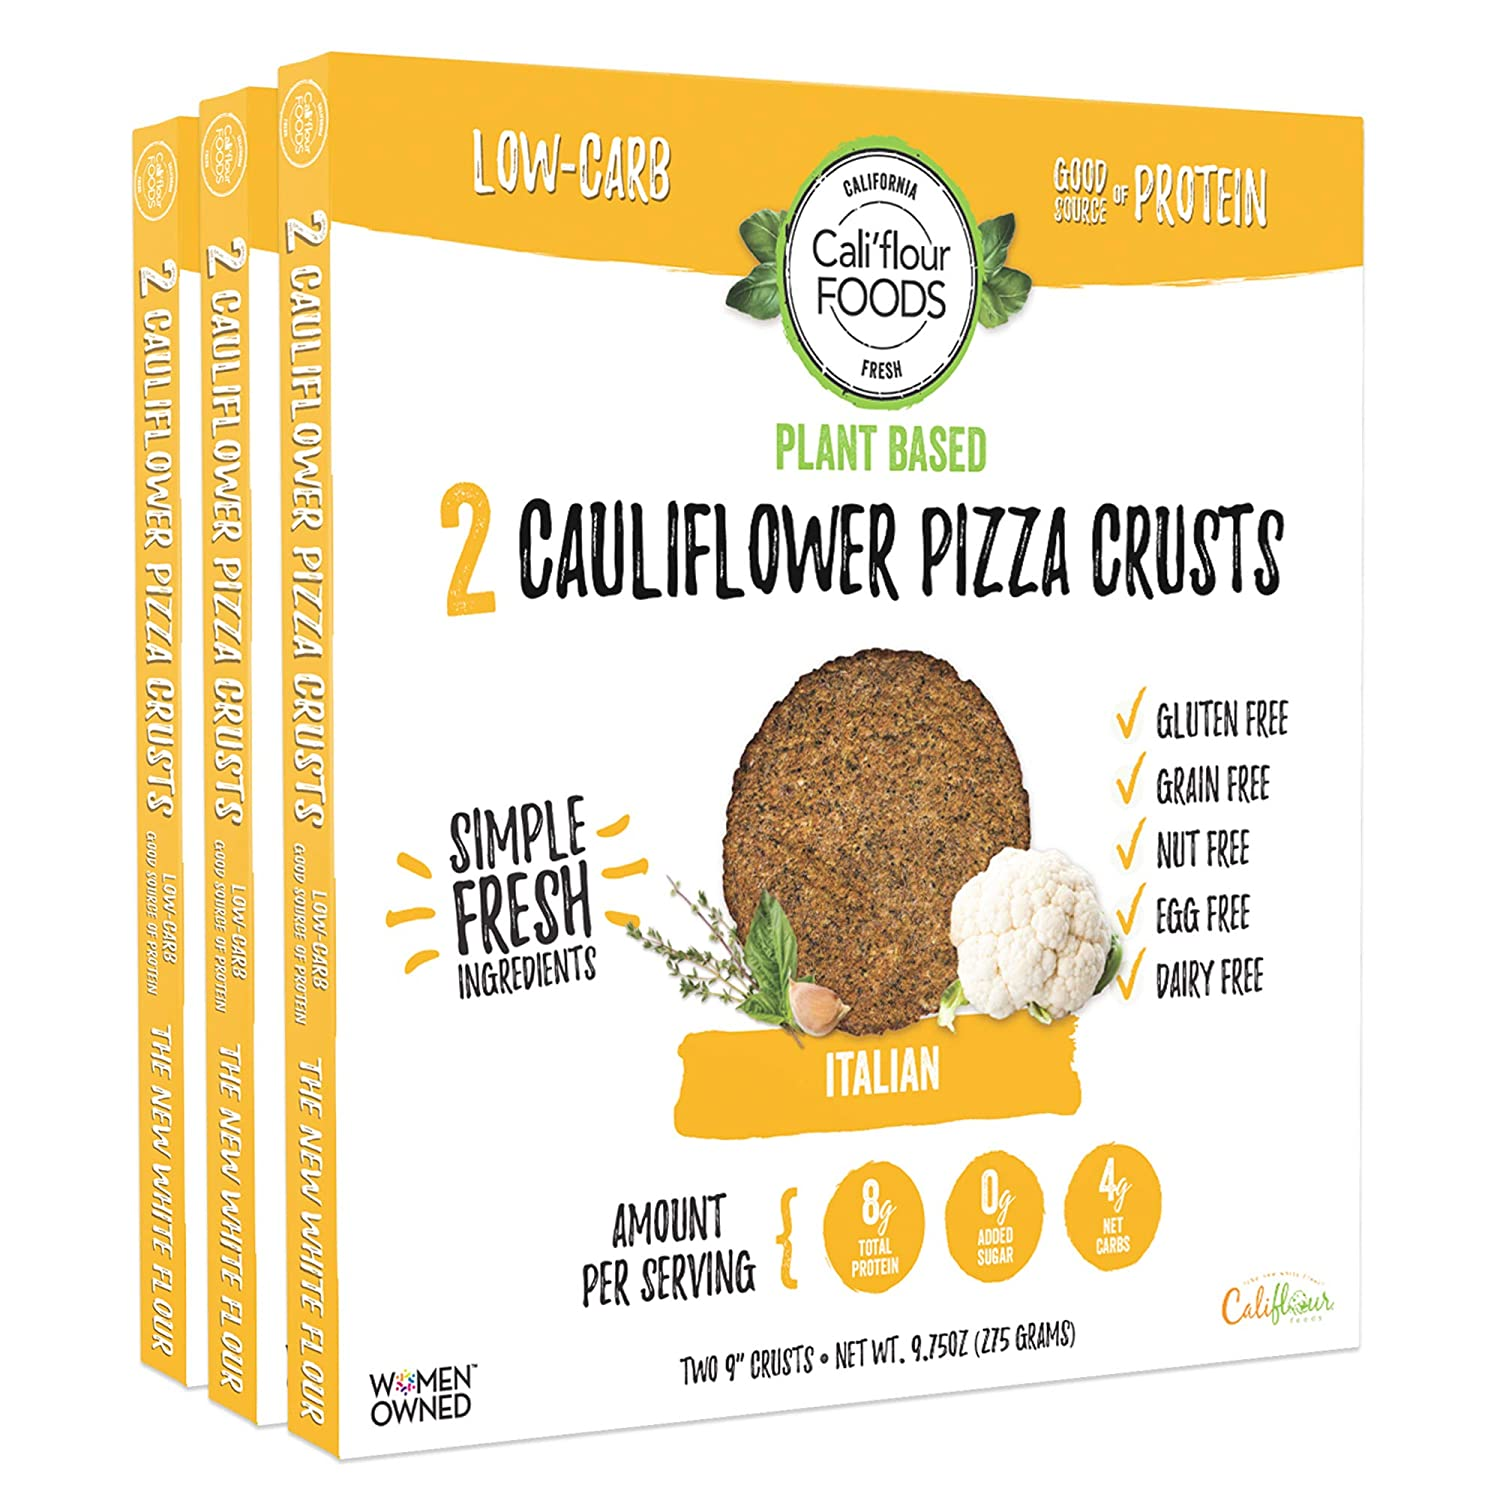 Cali'flour Foods Plant-Based Pizza Crust (Original Italian, 3 Boxes, 6 Crusts) - Fresh Cauliflower Base | Vegan, Low Carb, High Protein, Gluten and Grain Free | Paleo Friendly